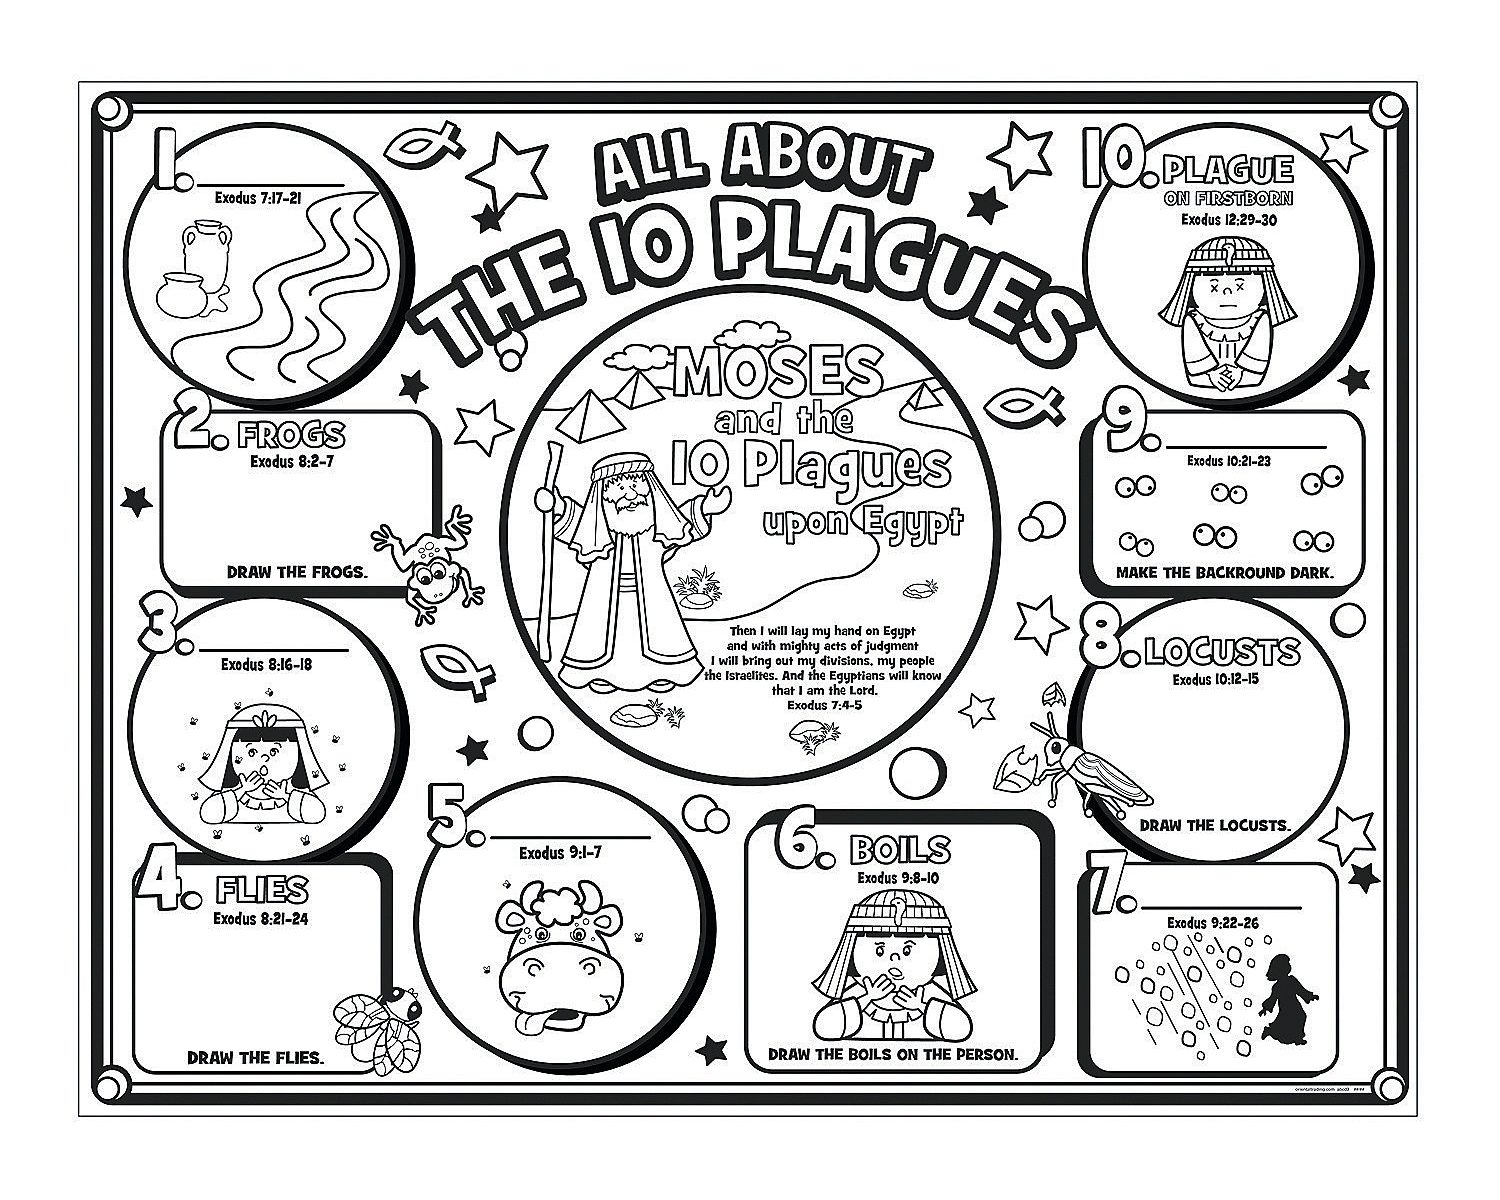 10 Plagues Coloring Pages At Getcolorings